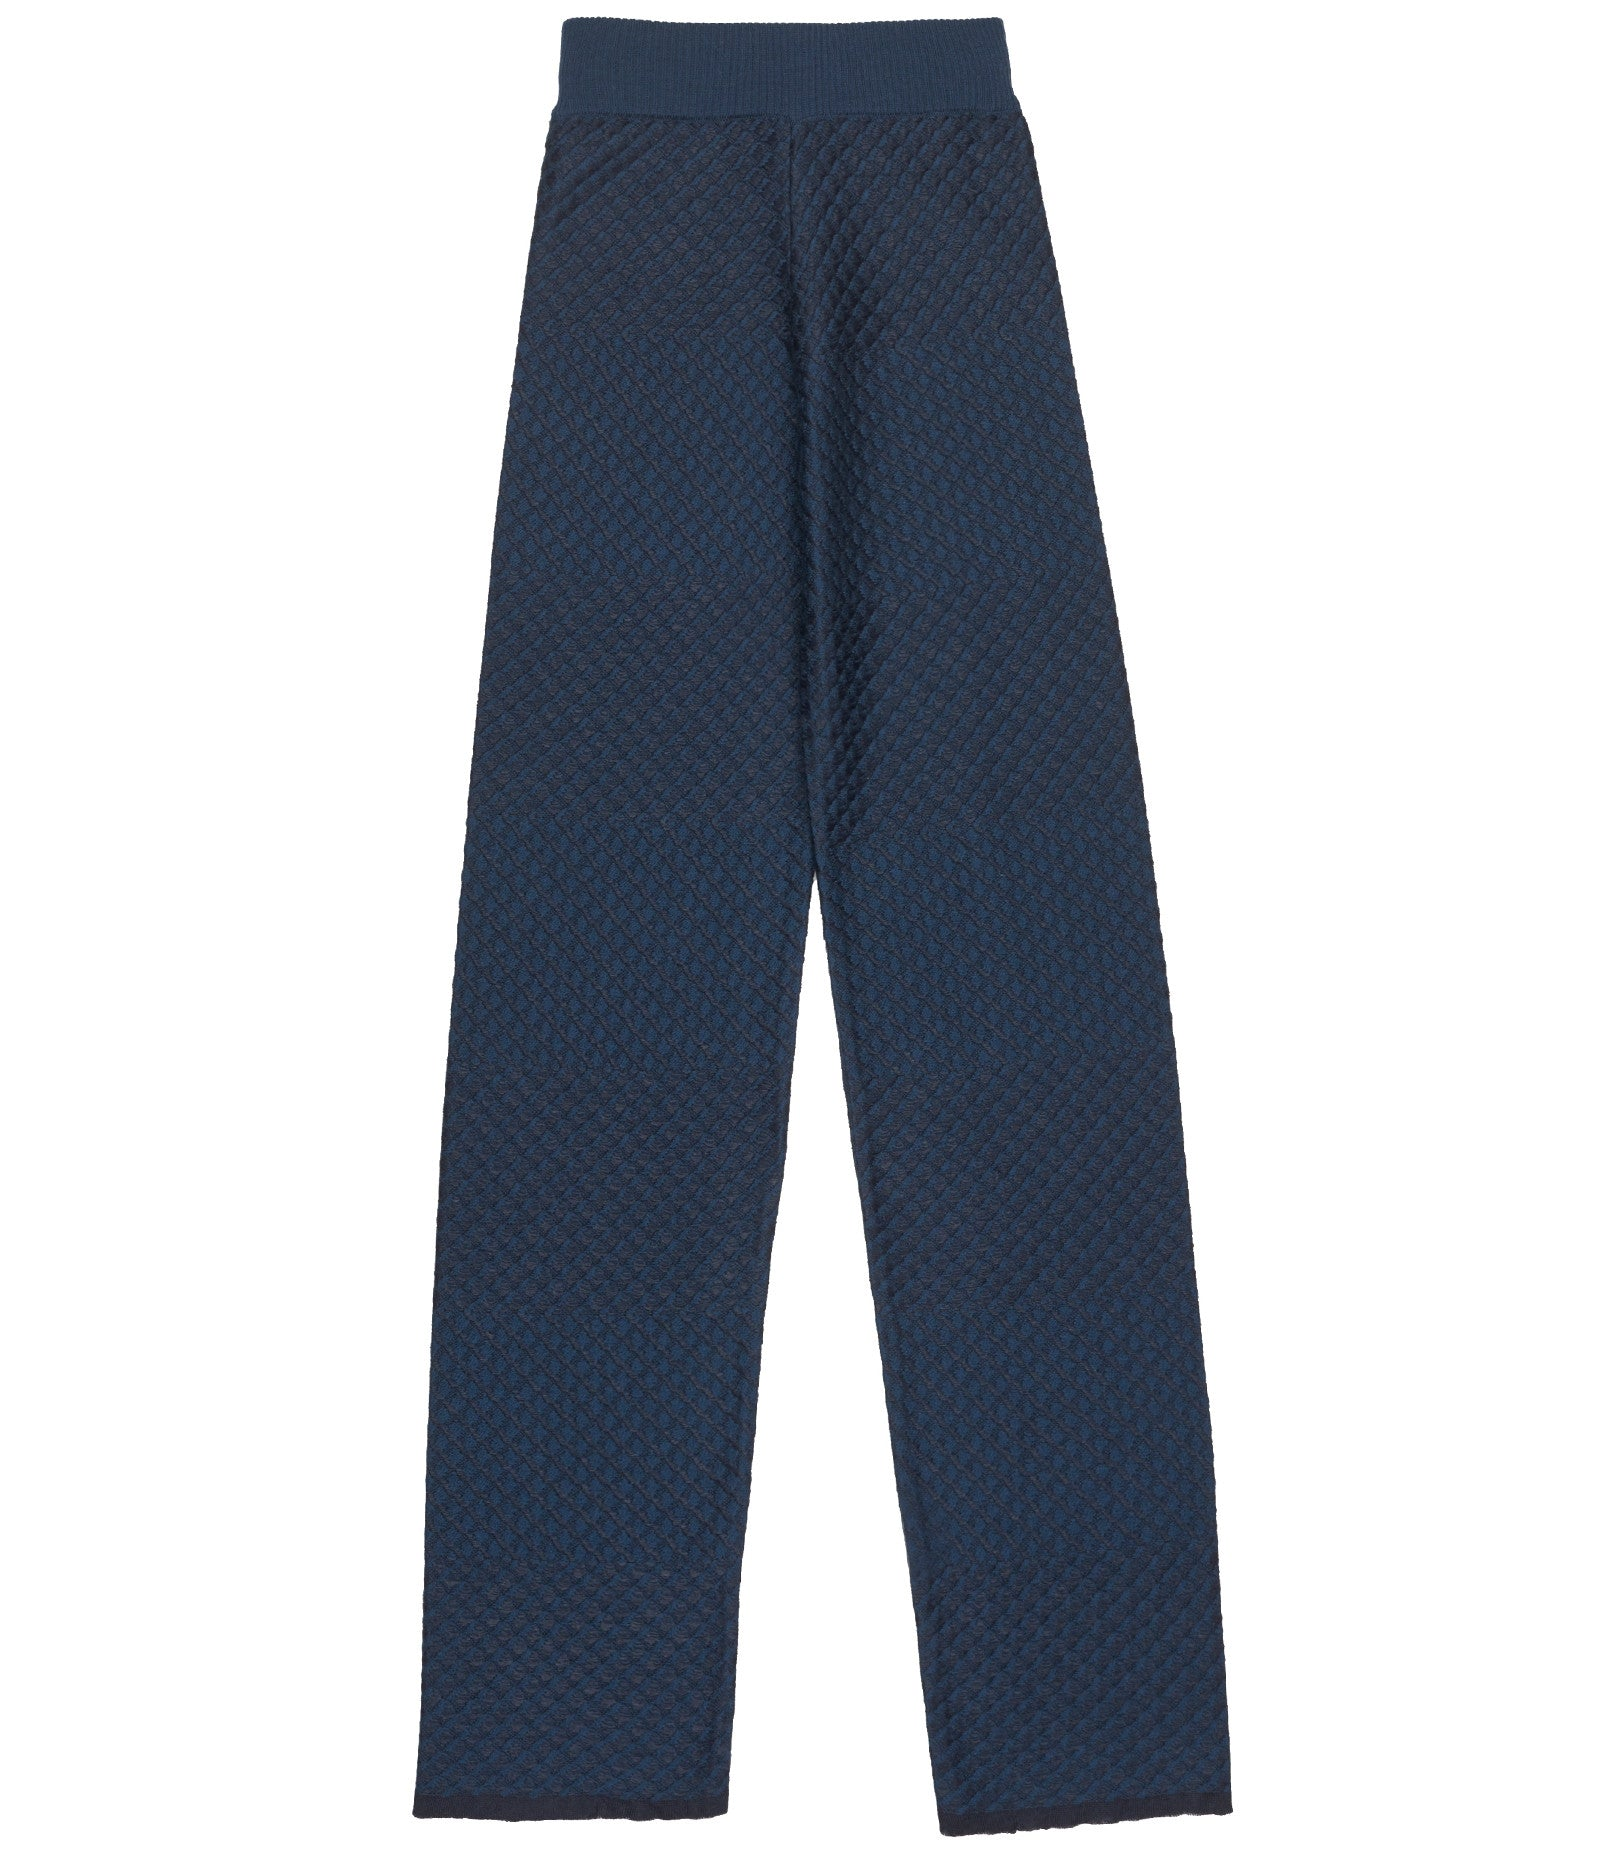 Striped Merino Navy Trousers